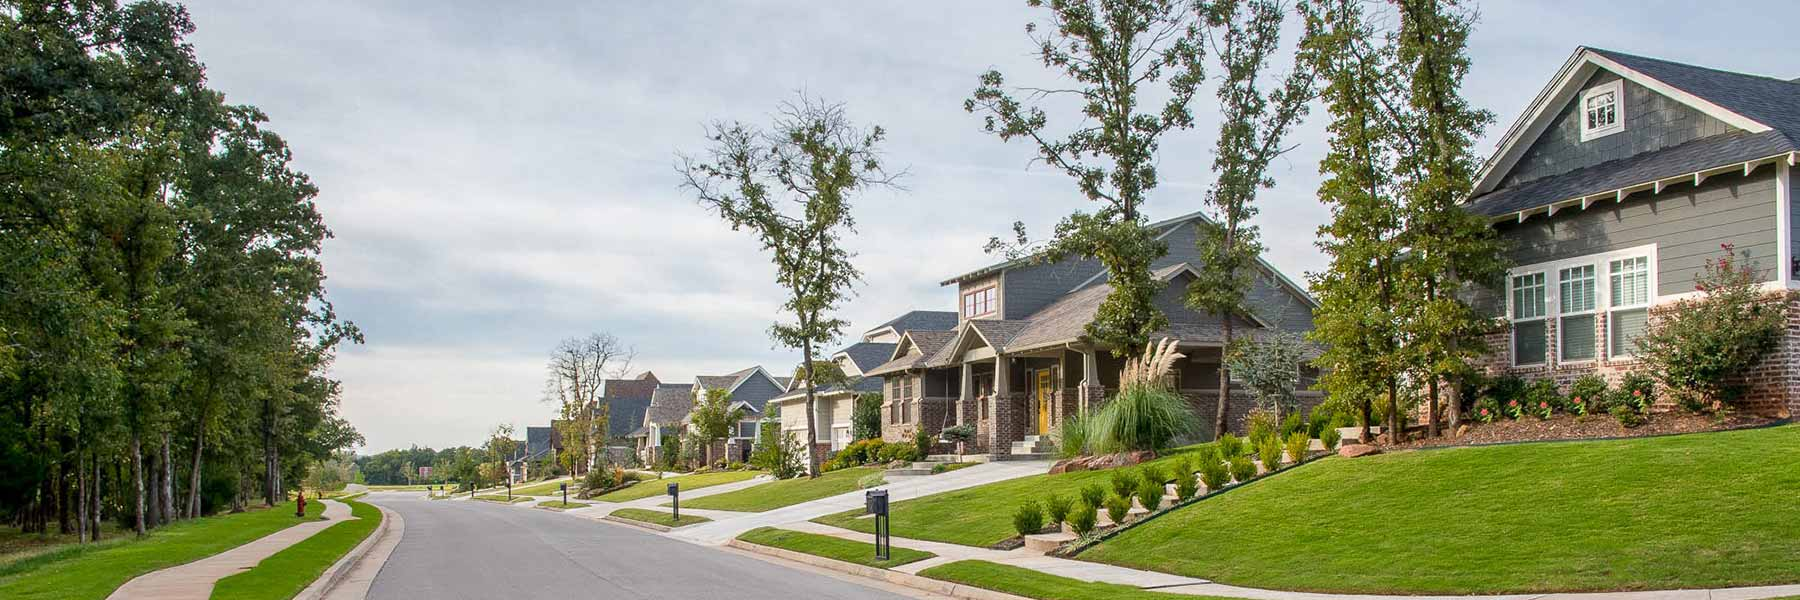 The Preserve at Oakdale Ridge Community, by McCaleb Homes